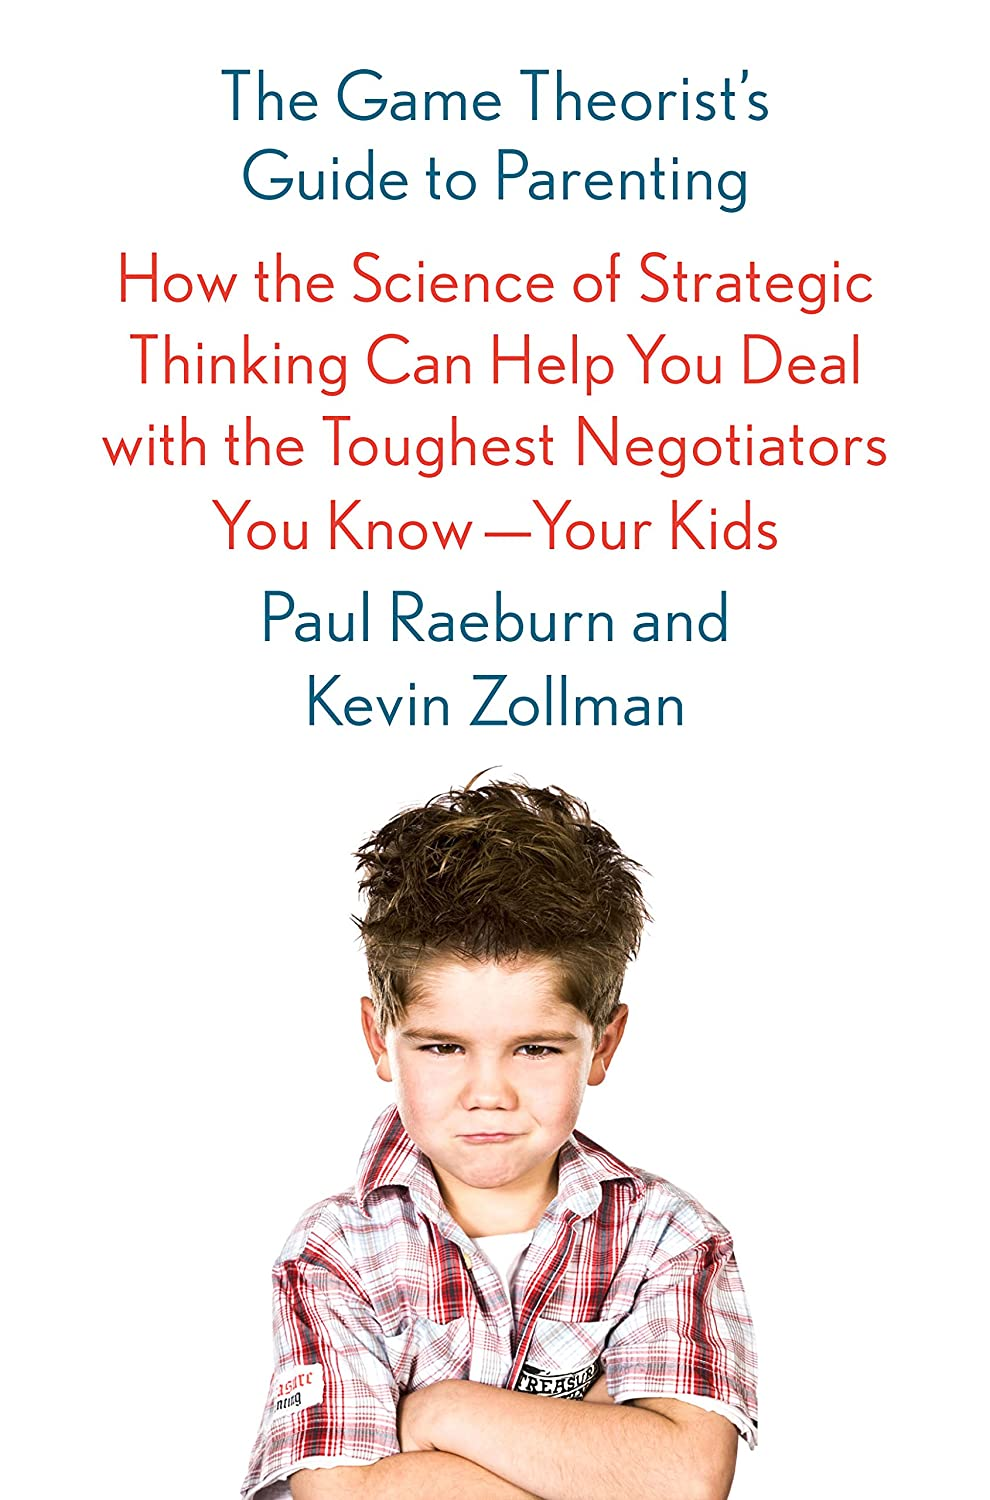 The Game Theorist's Guide to Parenting: How the Science of